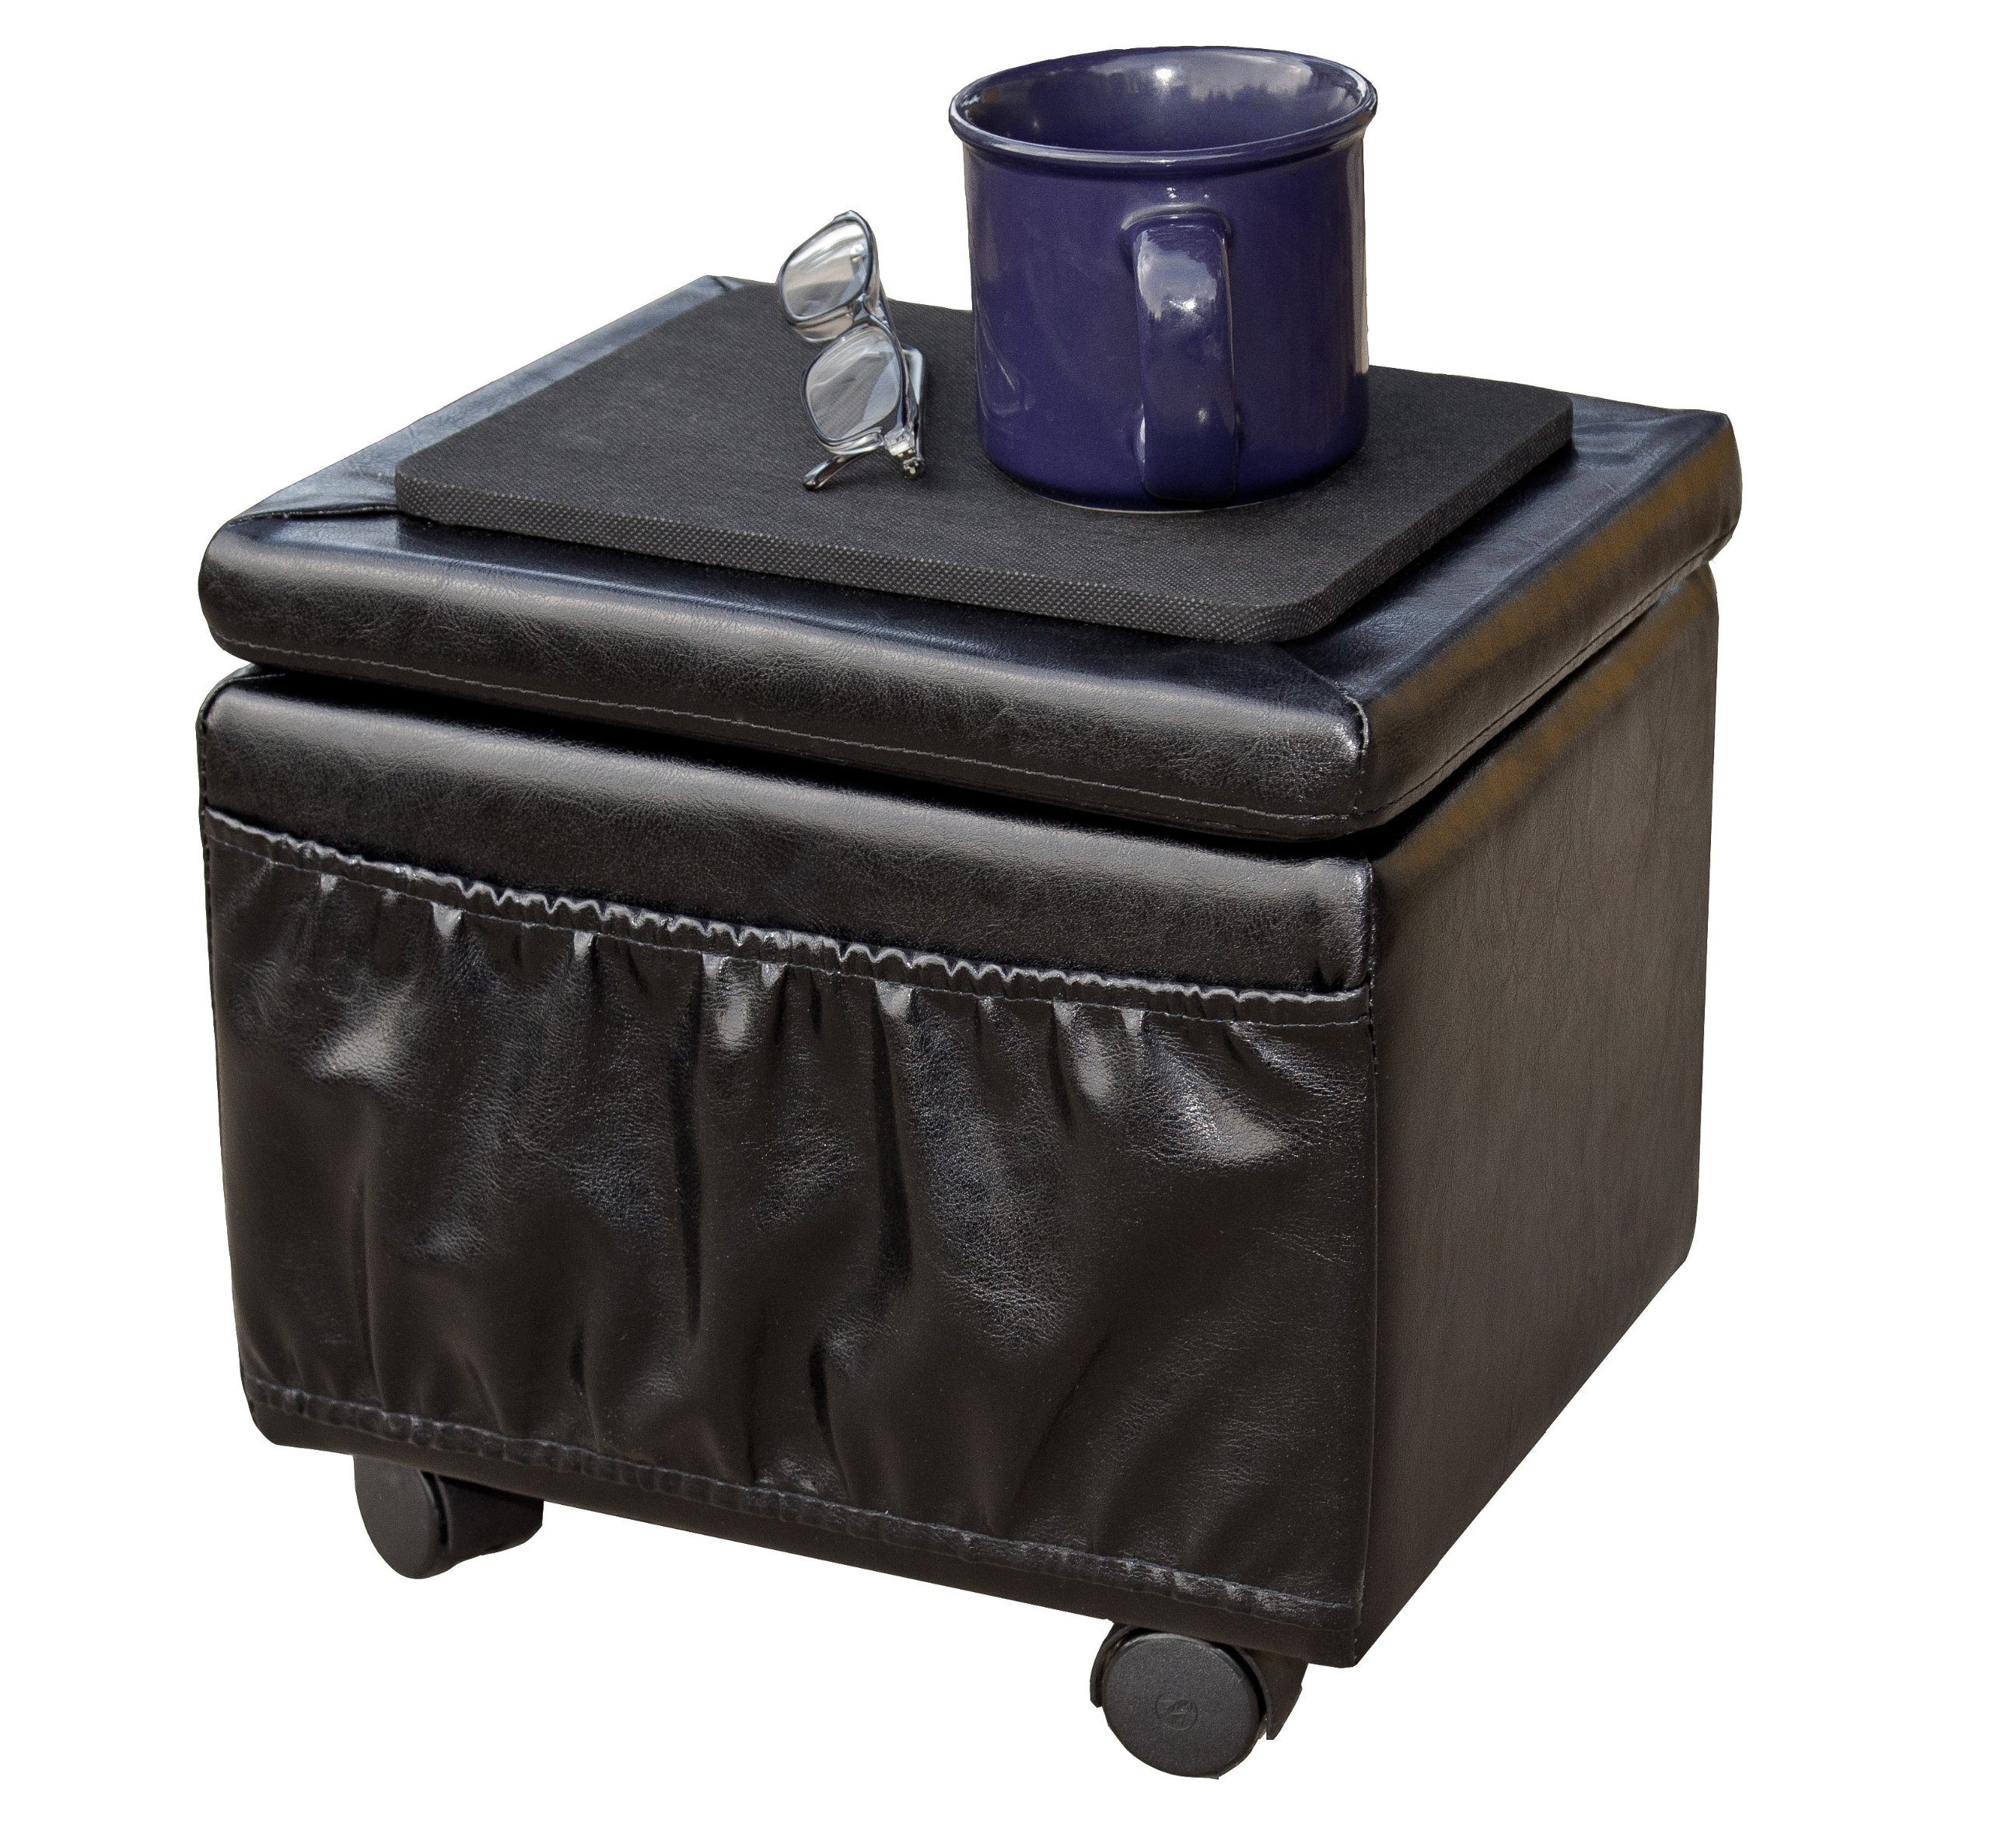 Paris Furniture Wheeled Storage Ottoman